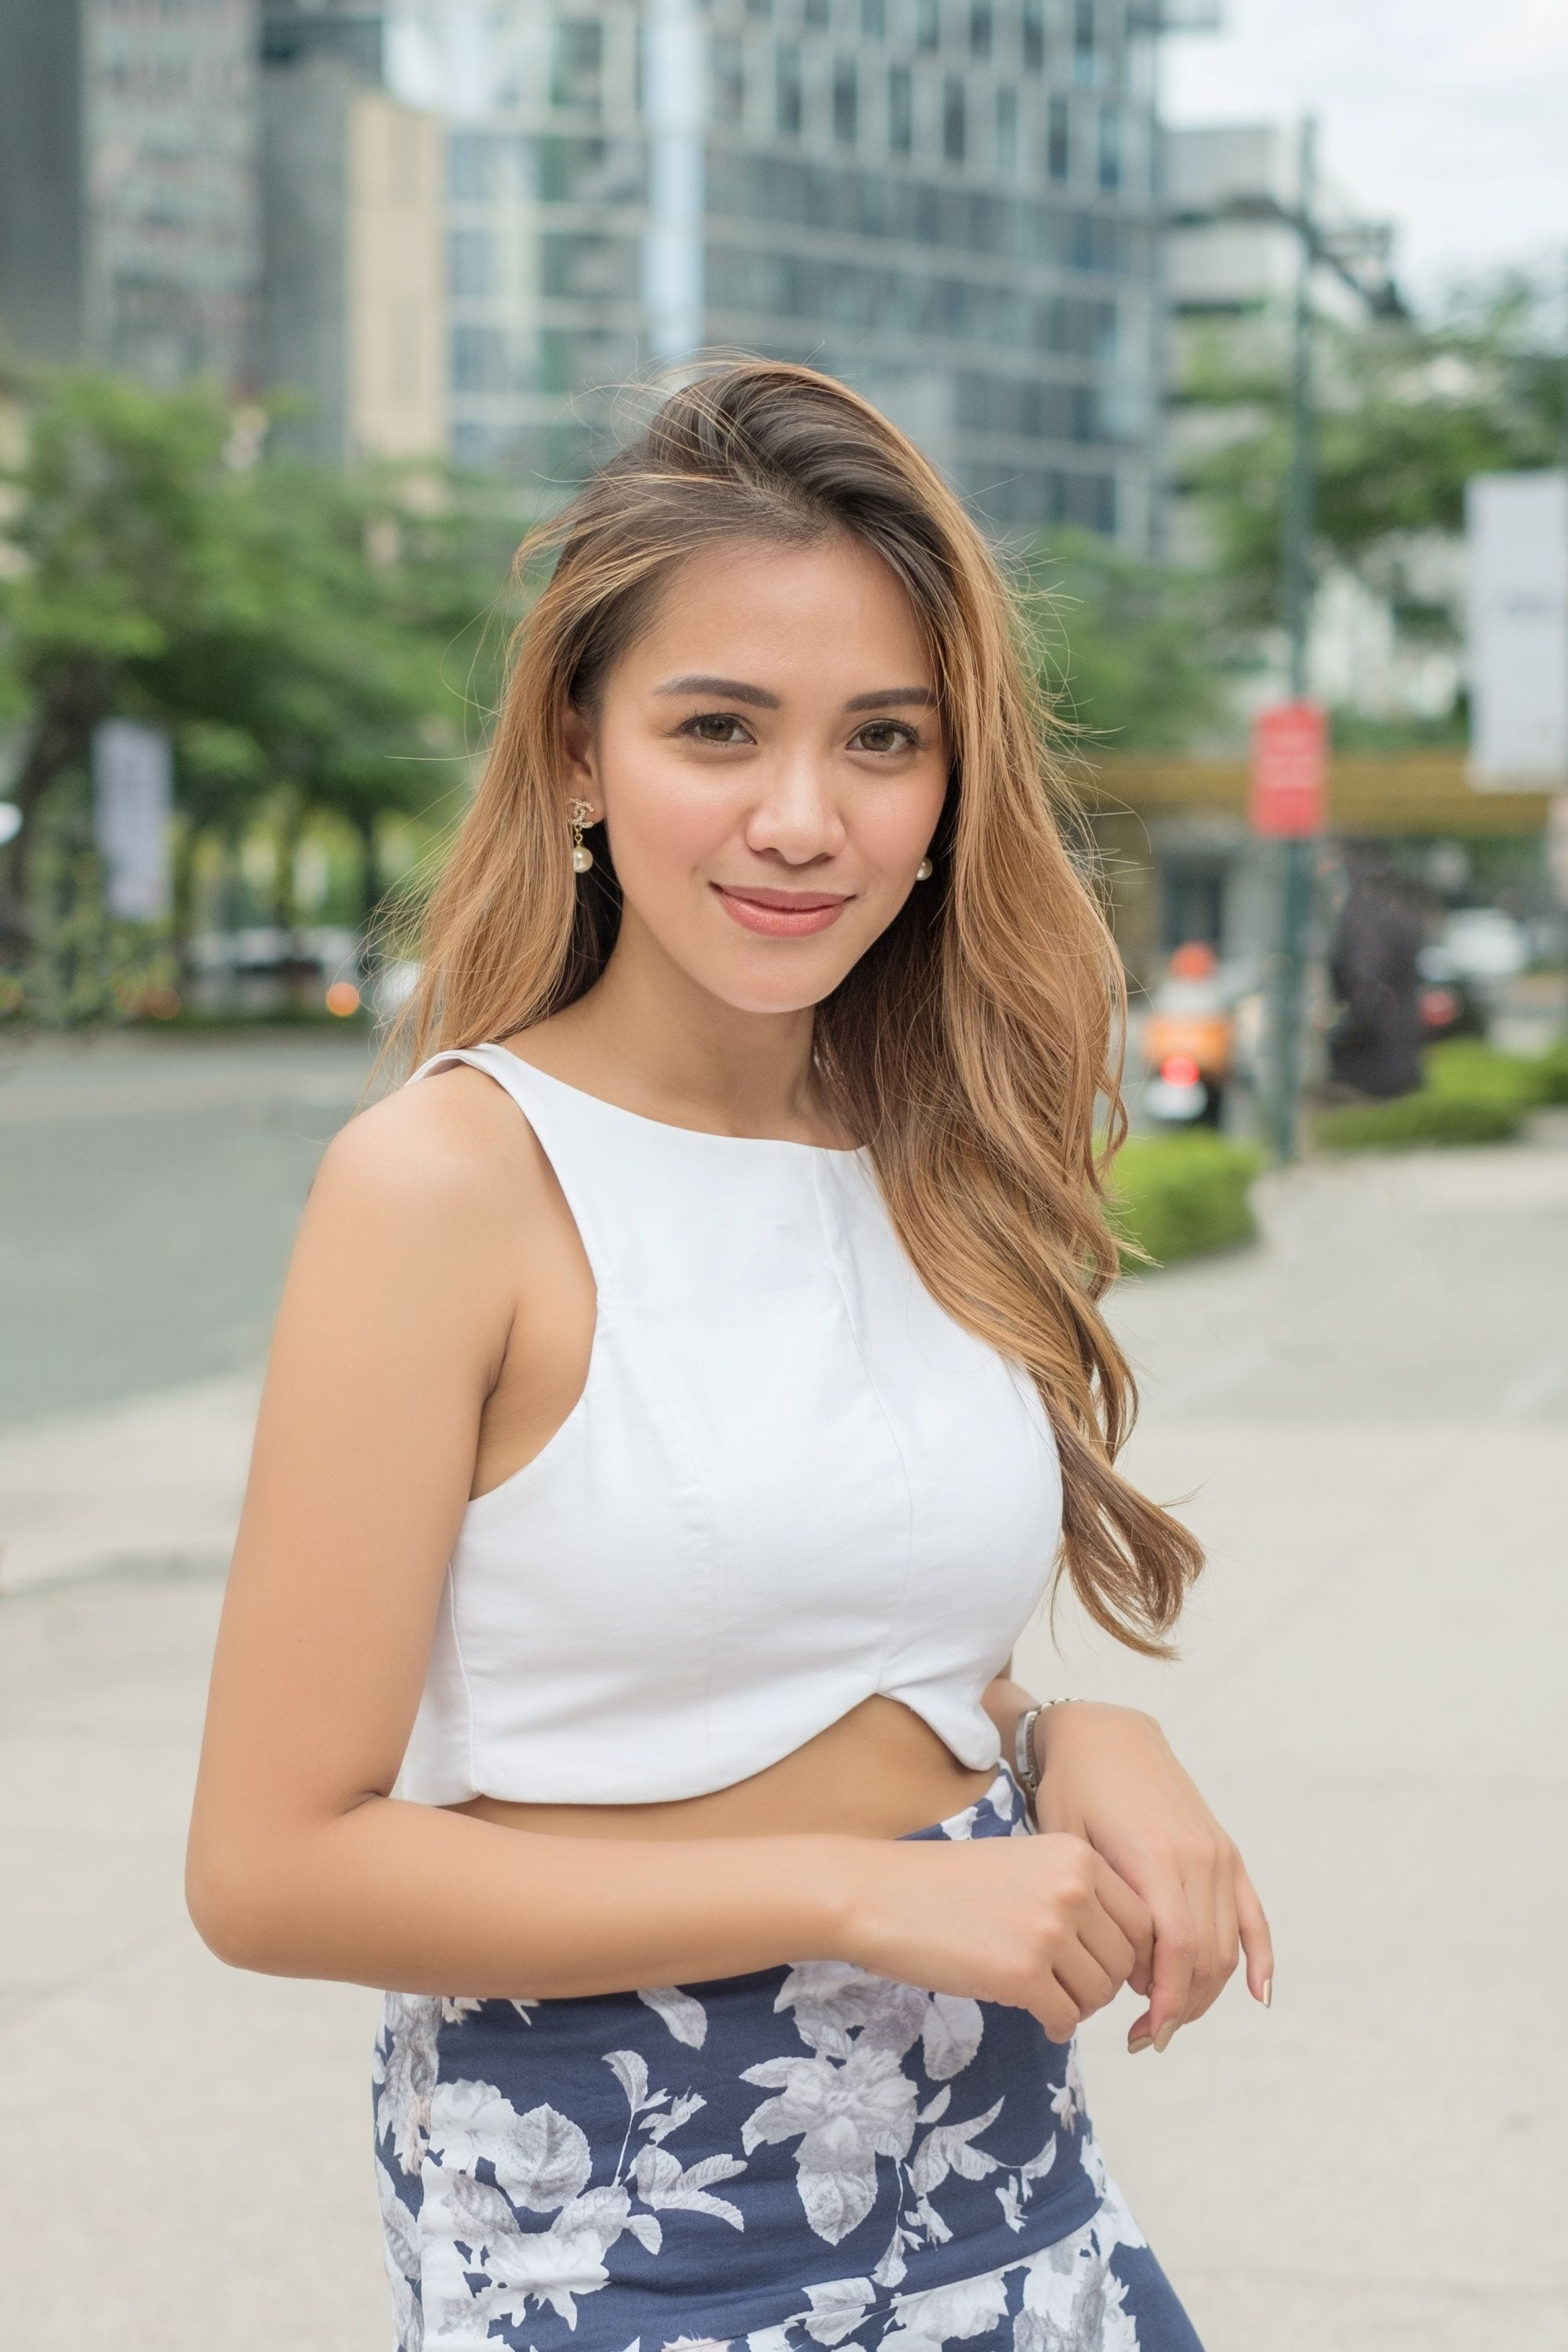 16 Asian Hair Color Ideas That Will Highlight Your Pinay Beauty,Best 3 In 1 Apple Charging Station Airpod Pro